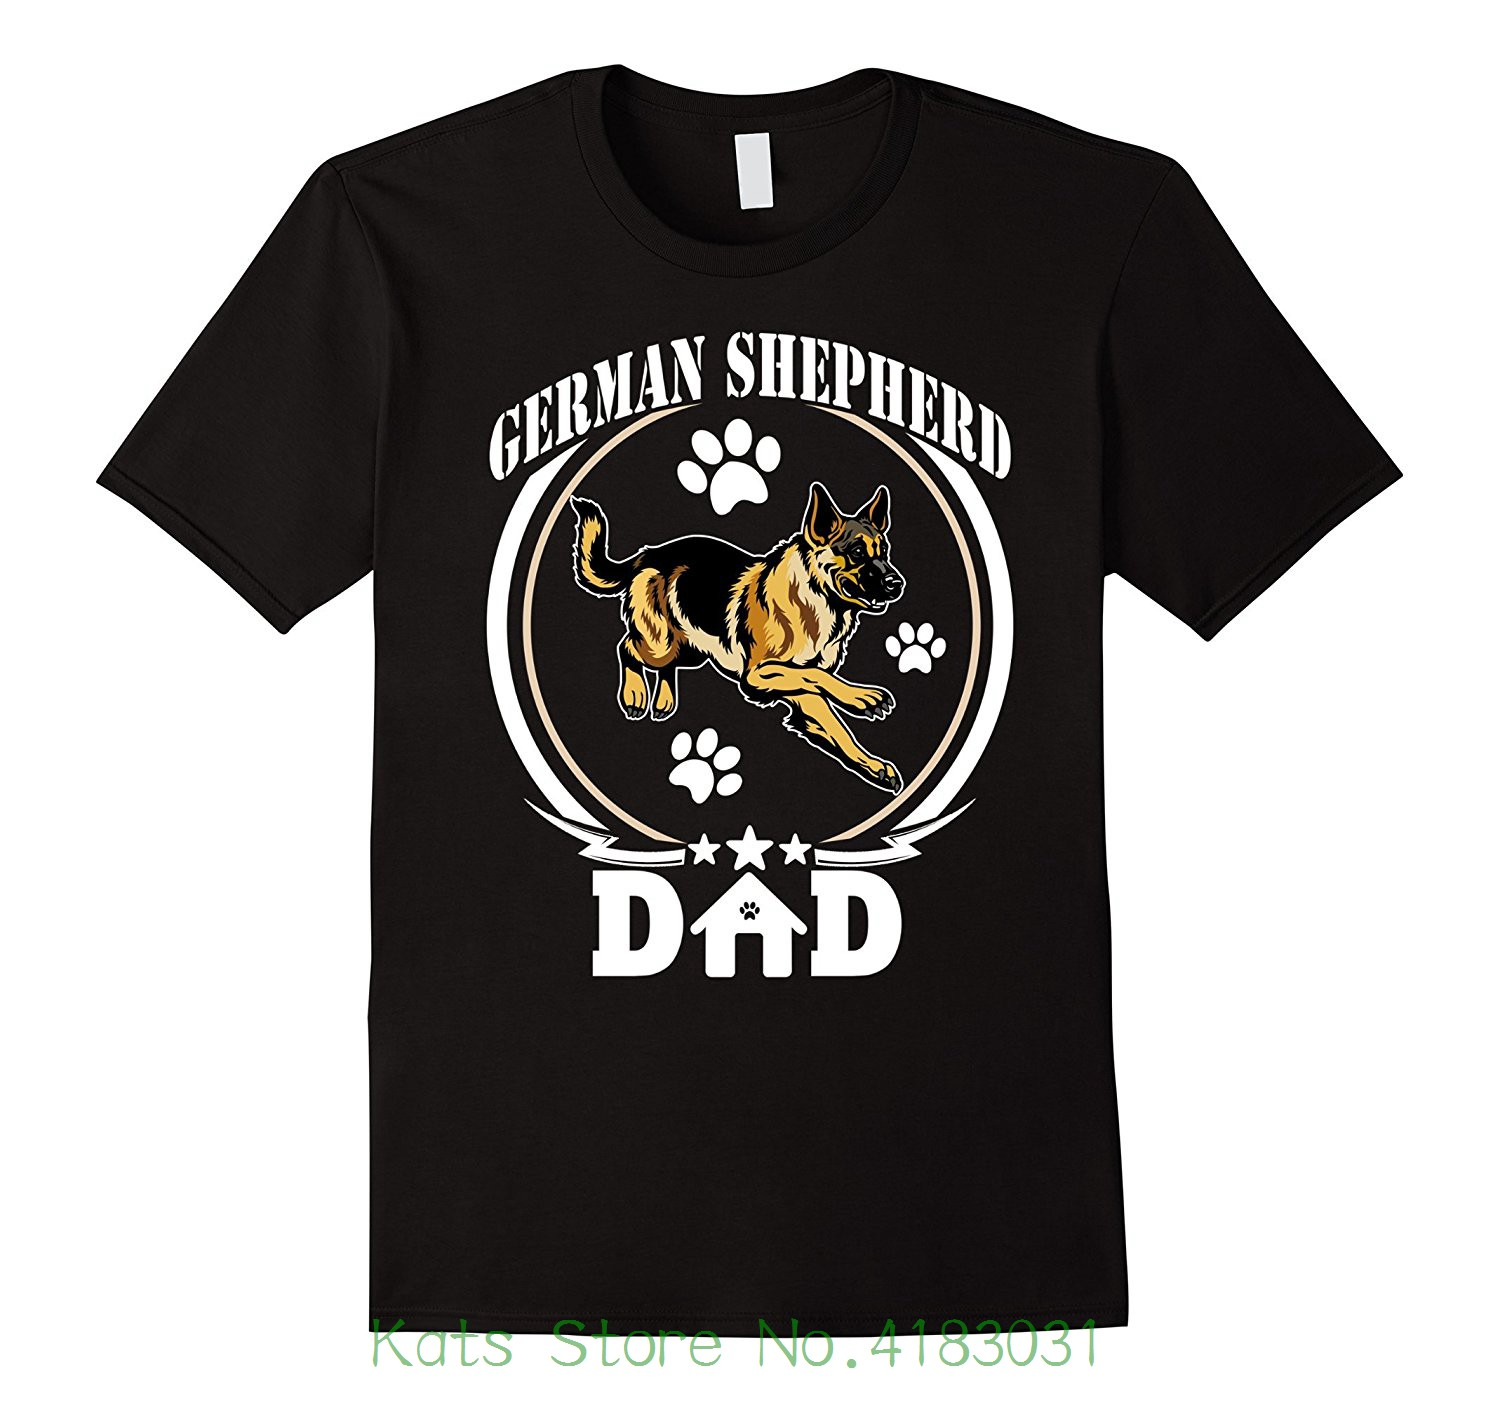 German Shepherd Dad T-shirt Gift For Fathers Day 2018 Dog Hot New 2018 Summer Fashion T Shirts